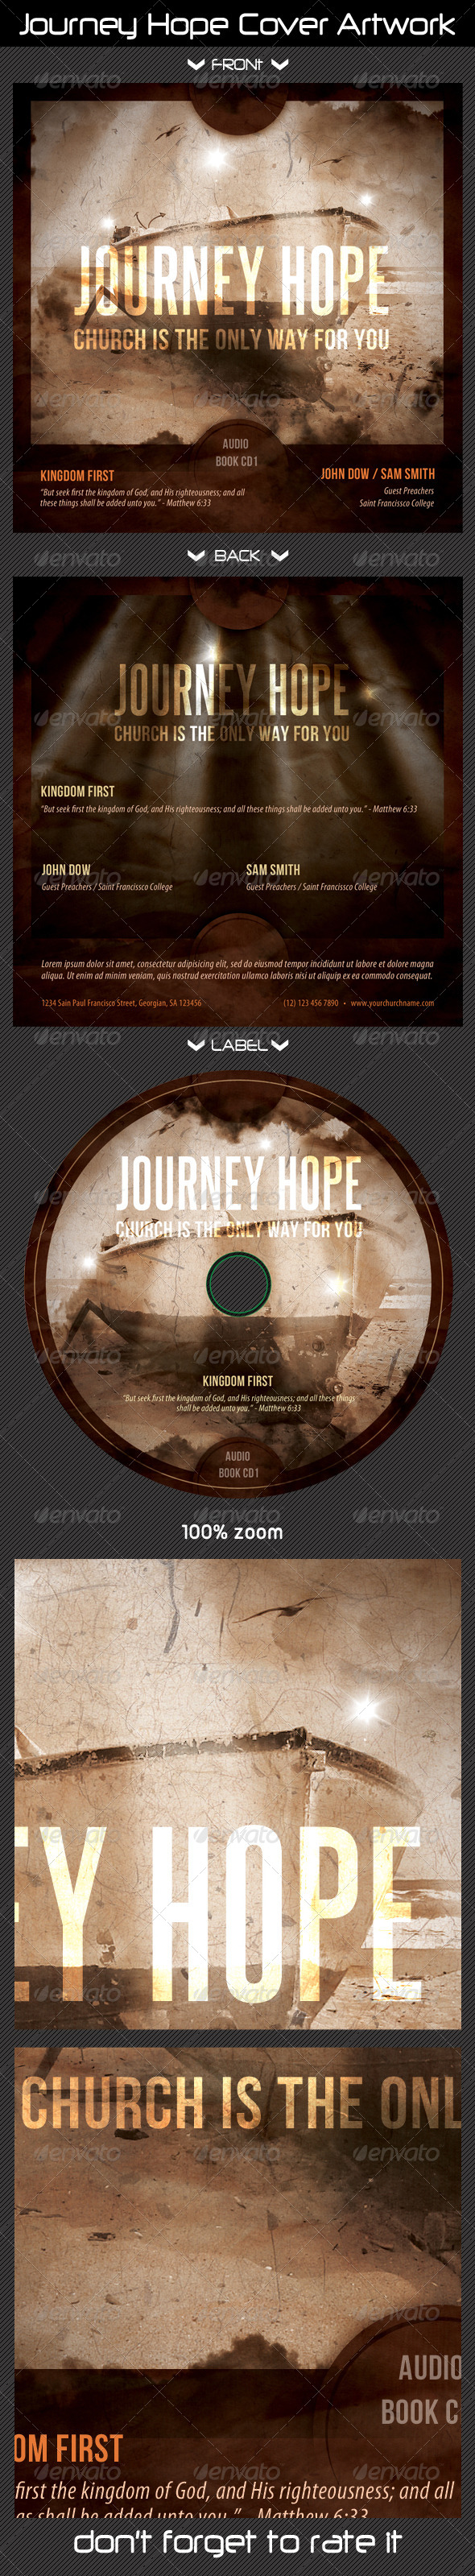 GraphicRiver Journey Hope CD Cover Artwork 8492988